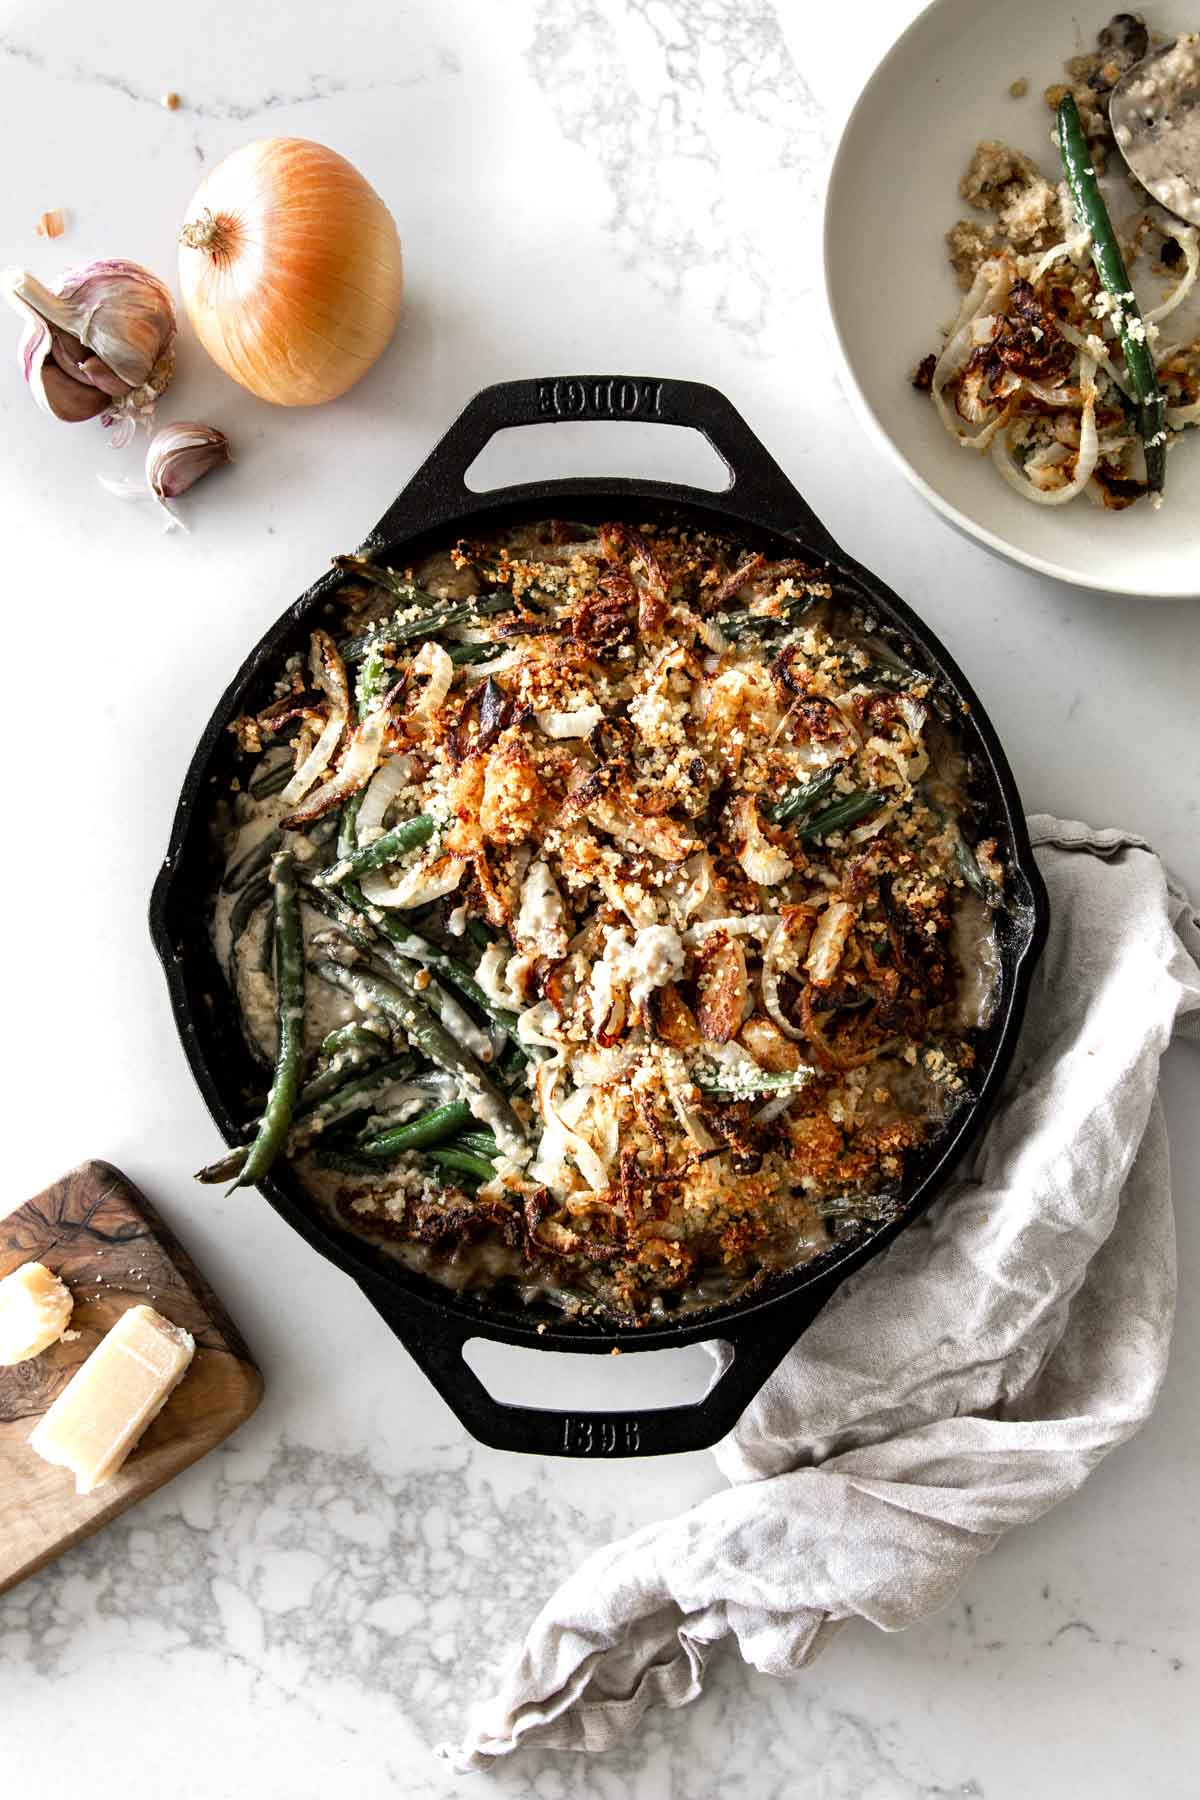 Green Bean Casserole in cast iron skillet with garlic, onions, parmesan and napkin placed around it